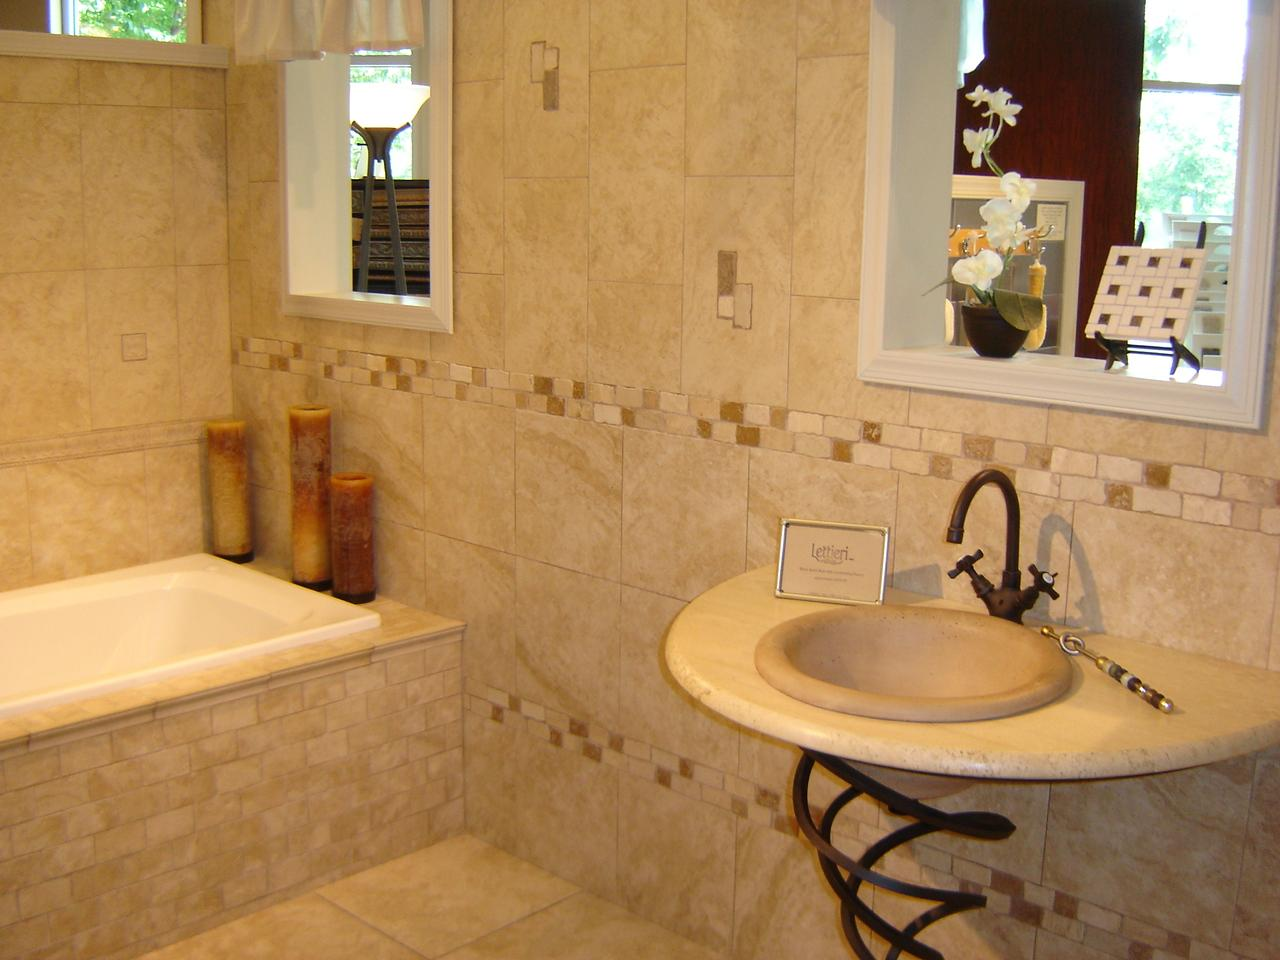 Bathroom tile design ideas for Small bathroom tiles